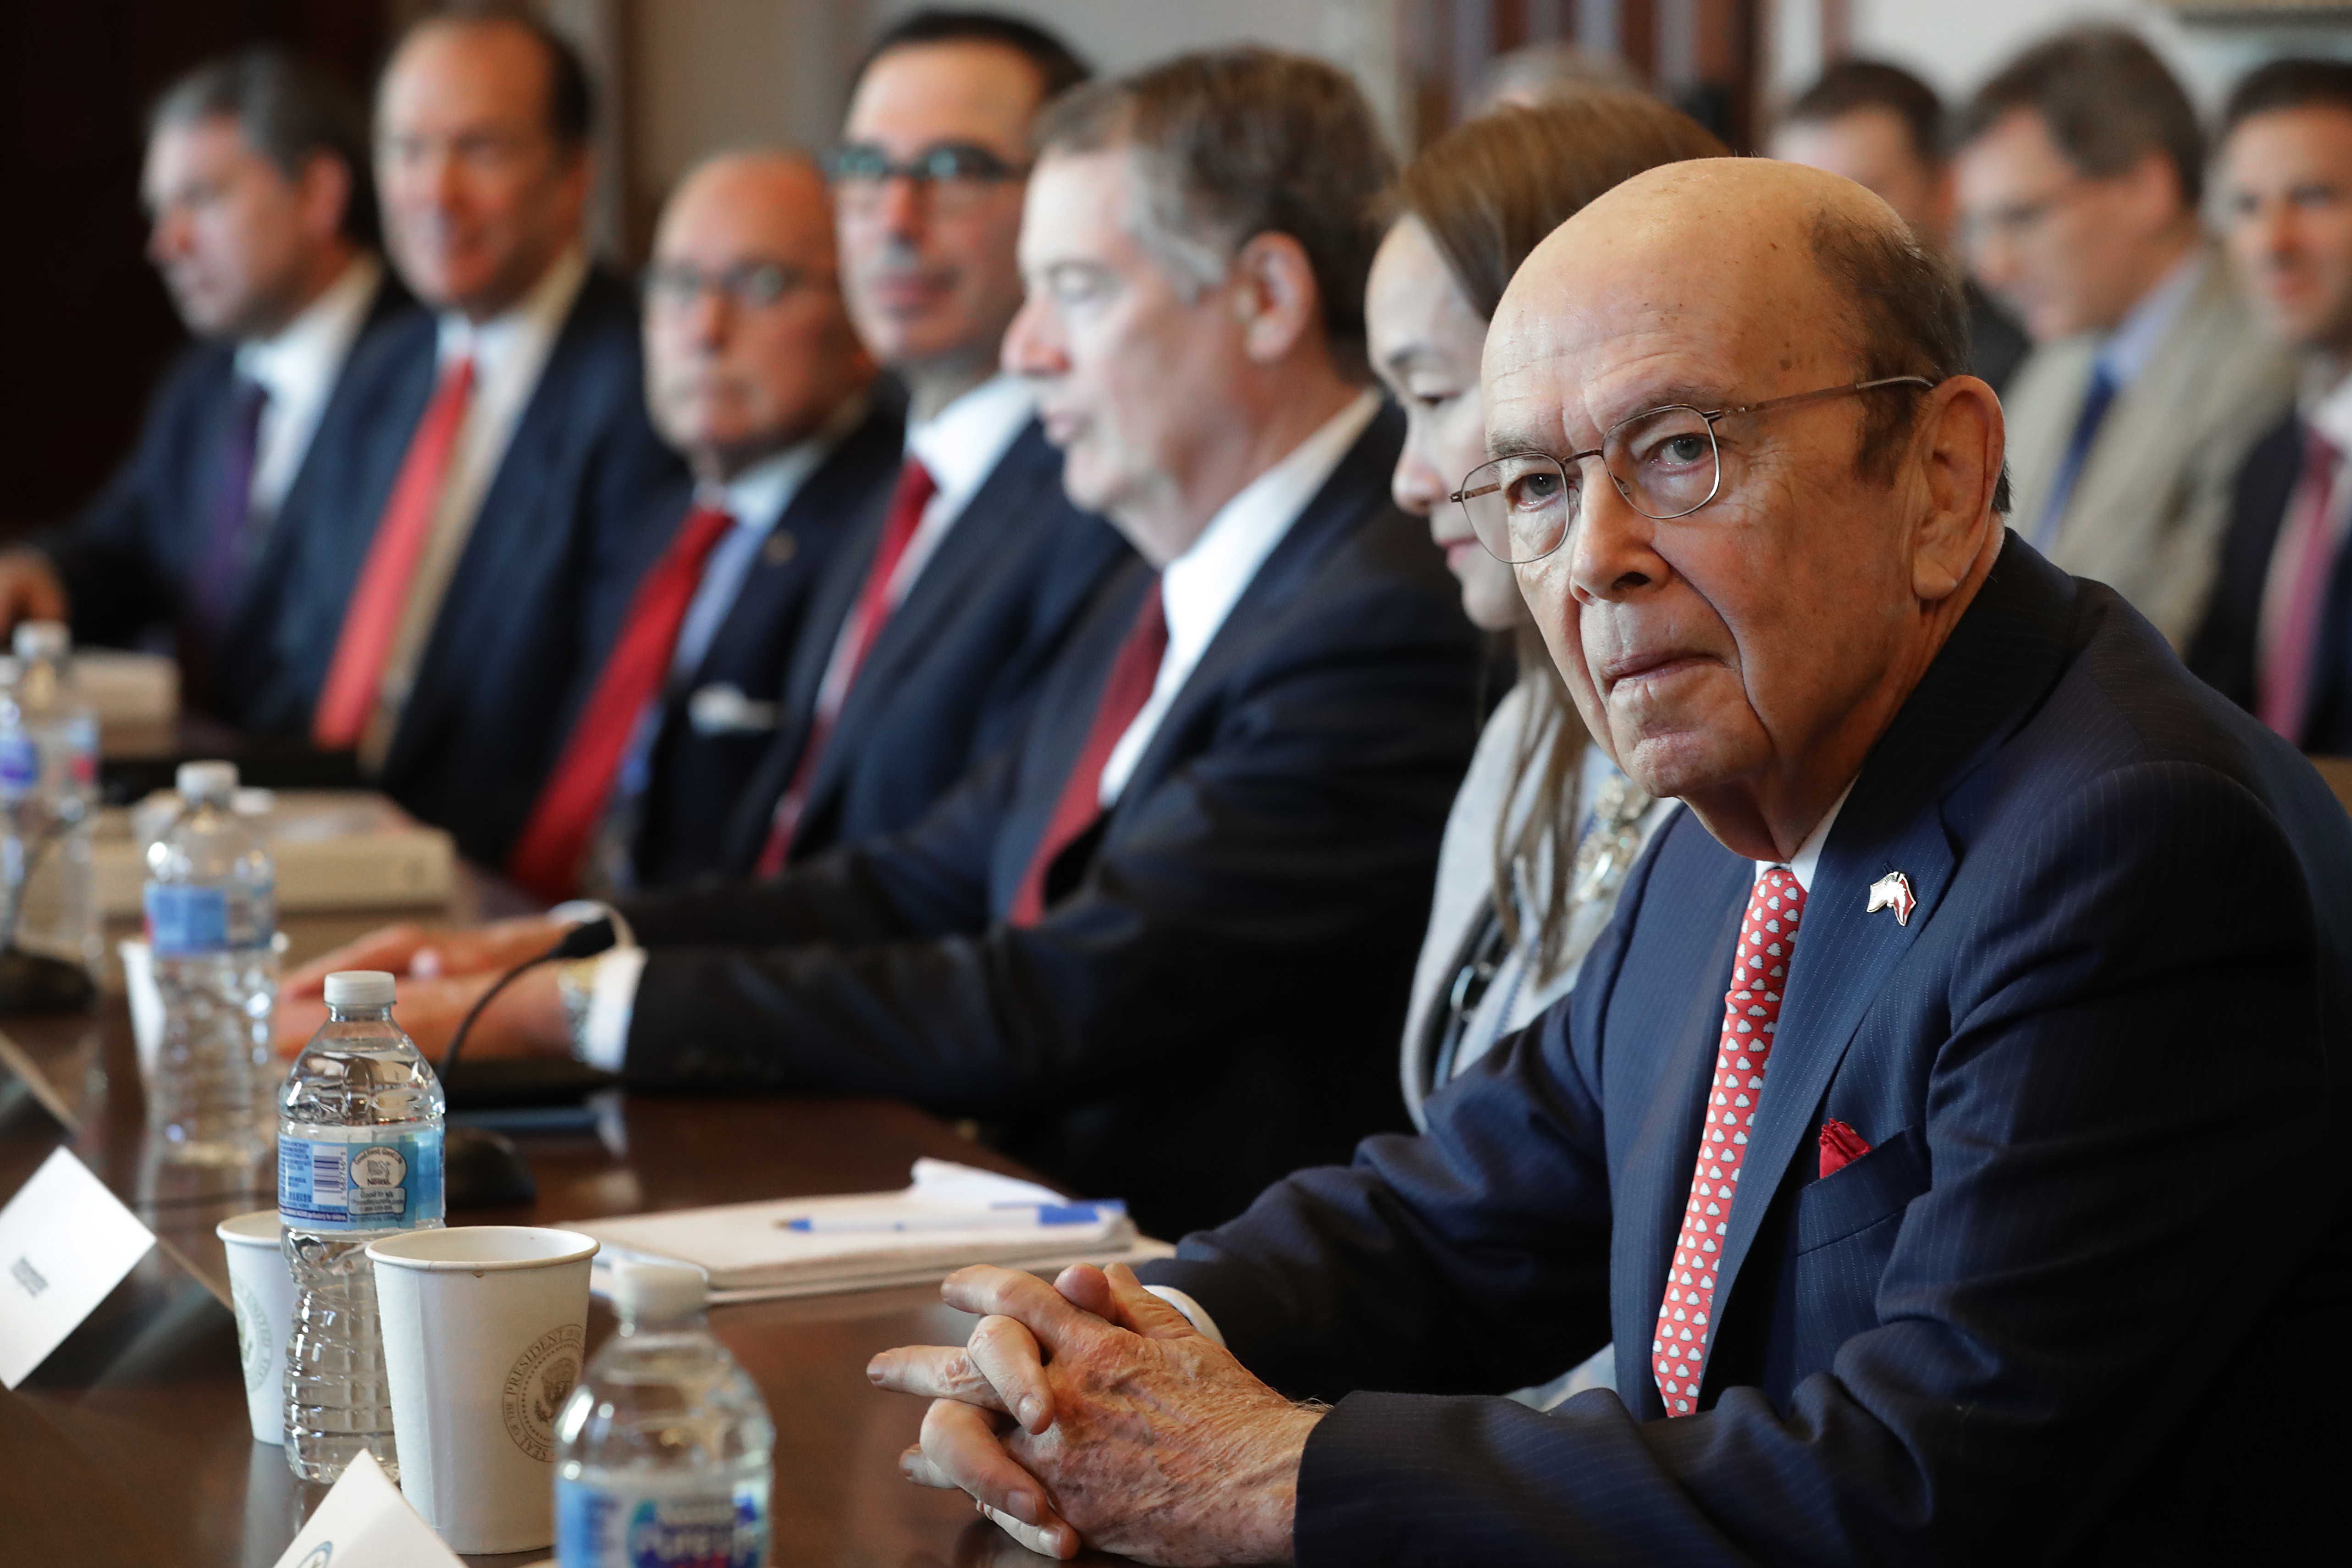 Commerce Secretary Wilbur Ross (R) and other Trump administration officials meet with Chinese vice ministers and senior representatives for trade negotiations on January 30, 2019. (Chip Somodevilla/Getty Images)